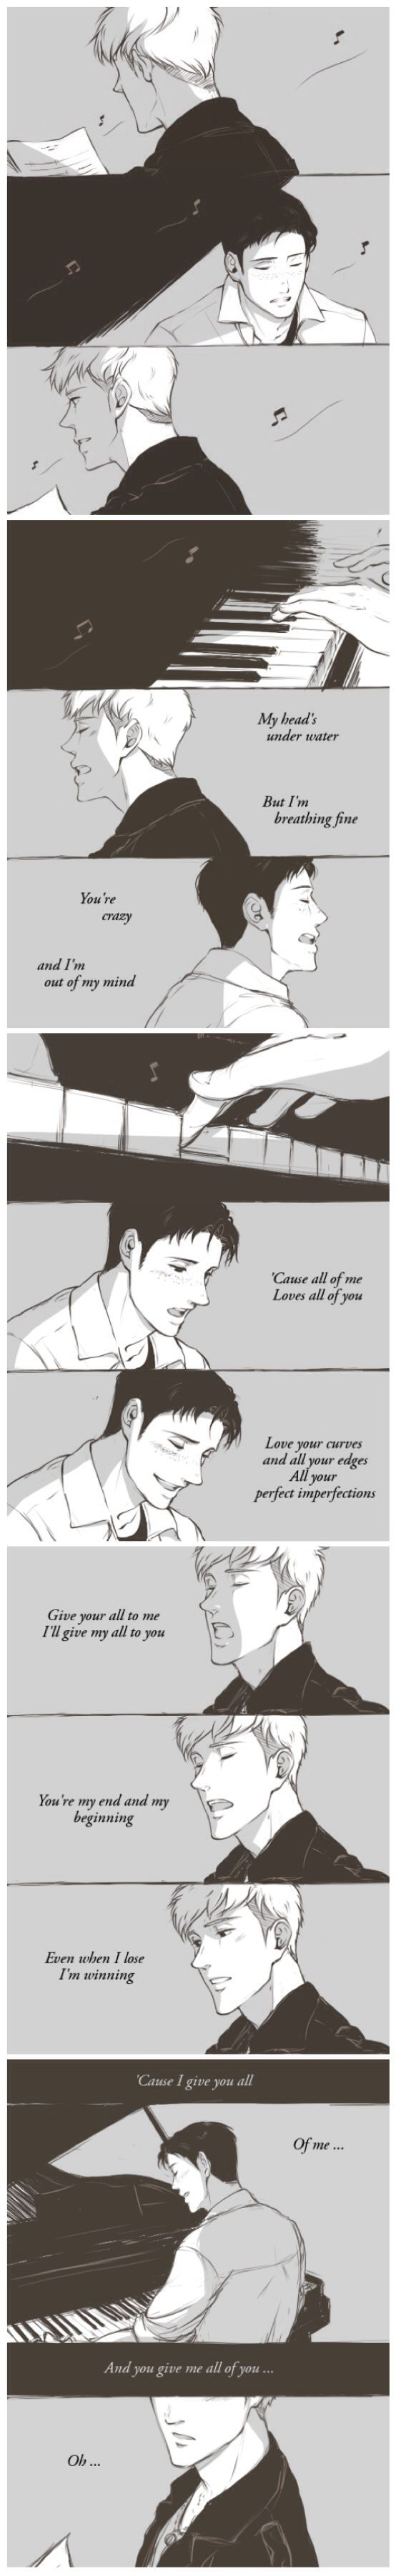 "SNK-""Sing for them"" (College/Reincarnation Au where Marco sings sad love songs for someone he can't remember and Jean tries to hide the past and his regret.)"